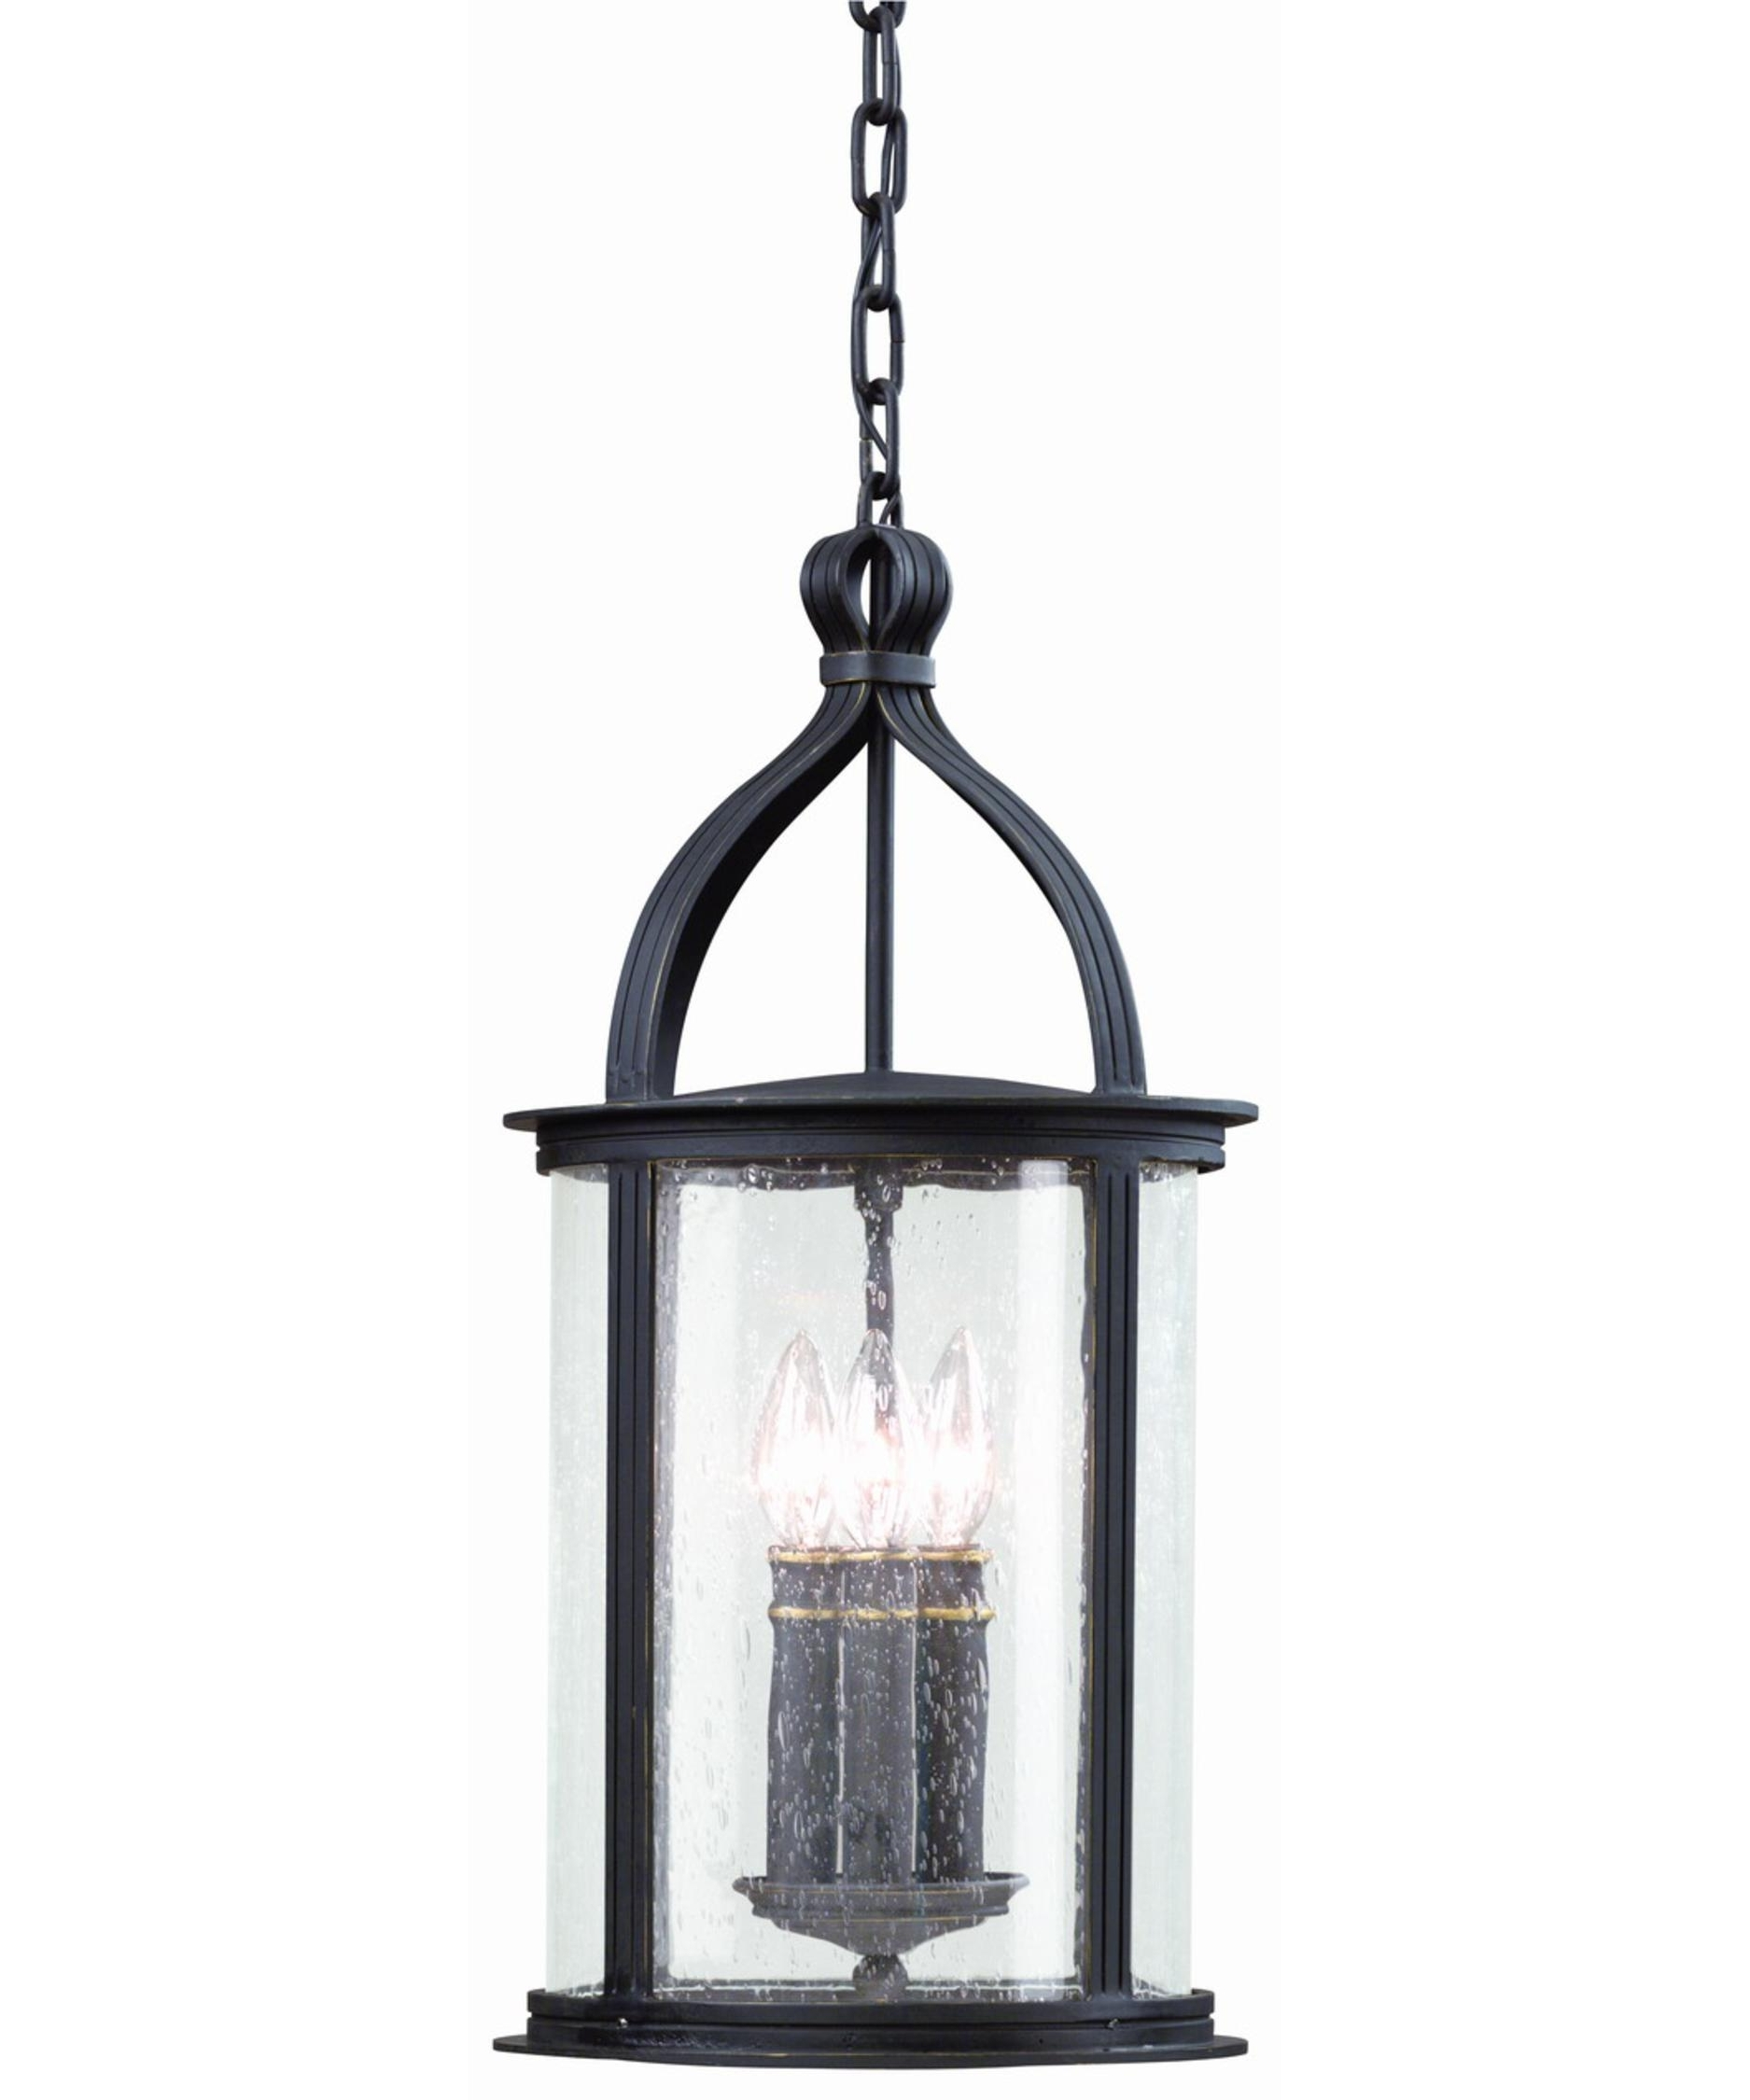 Troy Lighting F9476 Scarsdale 10 Inch Wide 3 Light Outdoor Hanging Regarding Latest Outdoor Hanging Metal Lanterns (View 17 of 20)